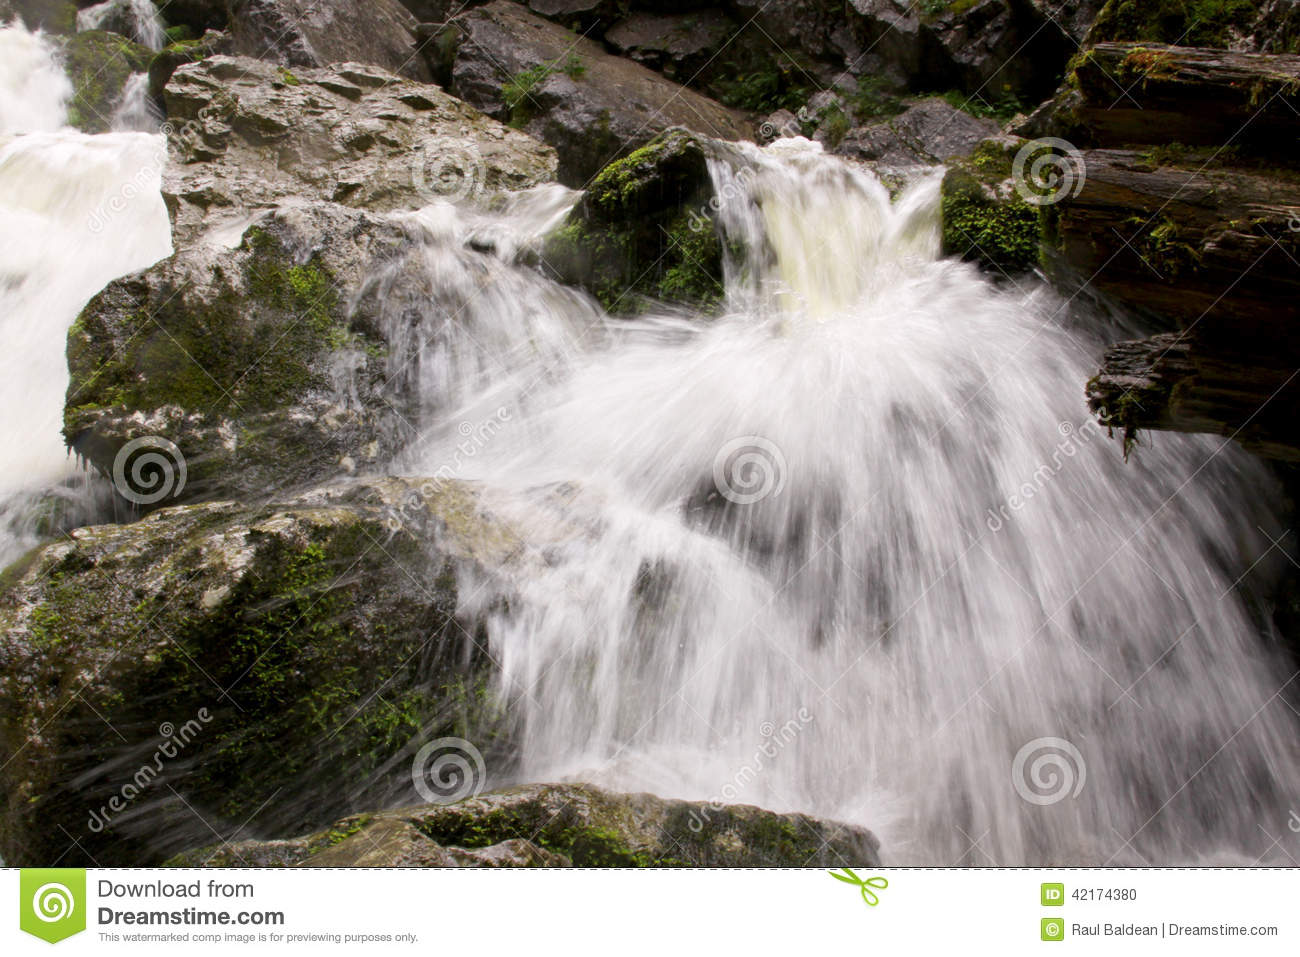 Small waterfall in river bed 03